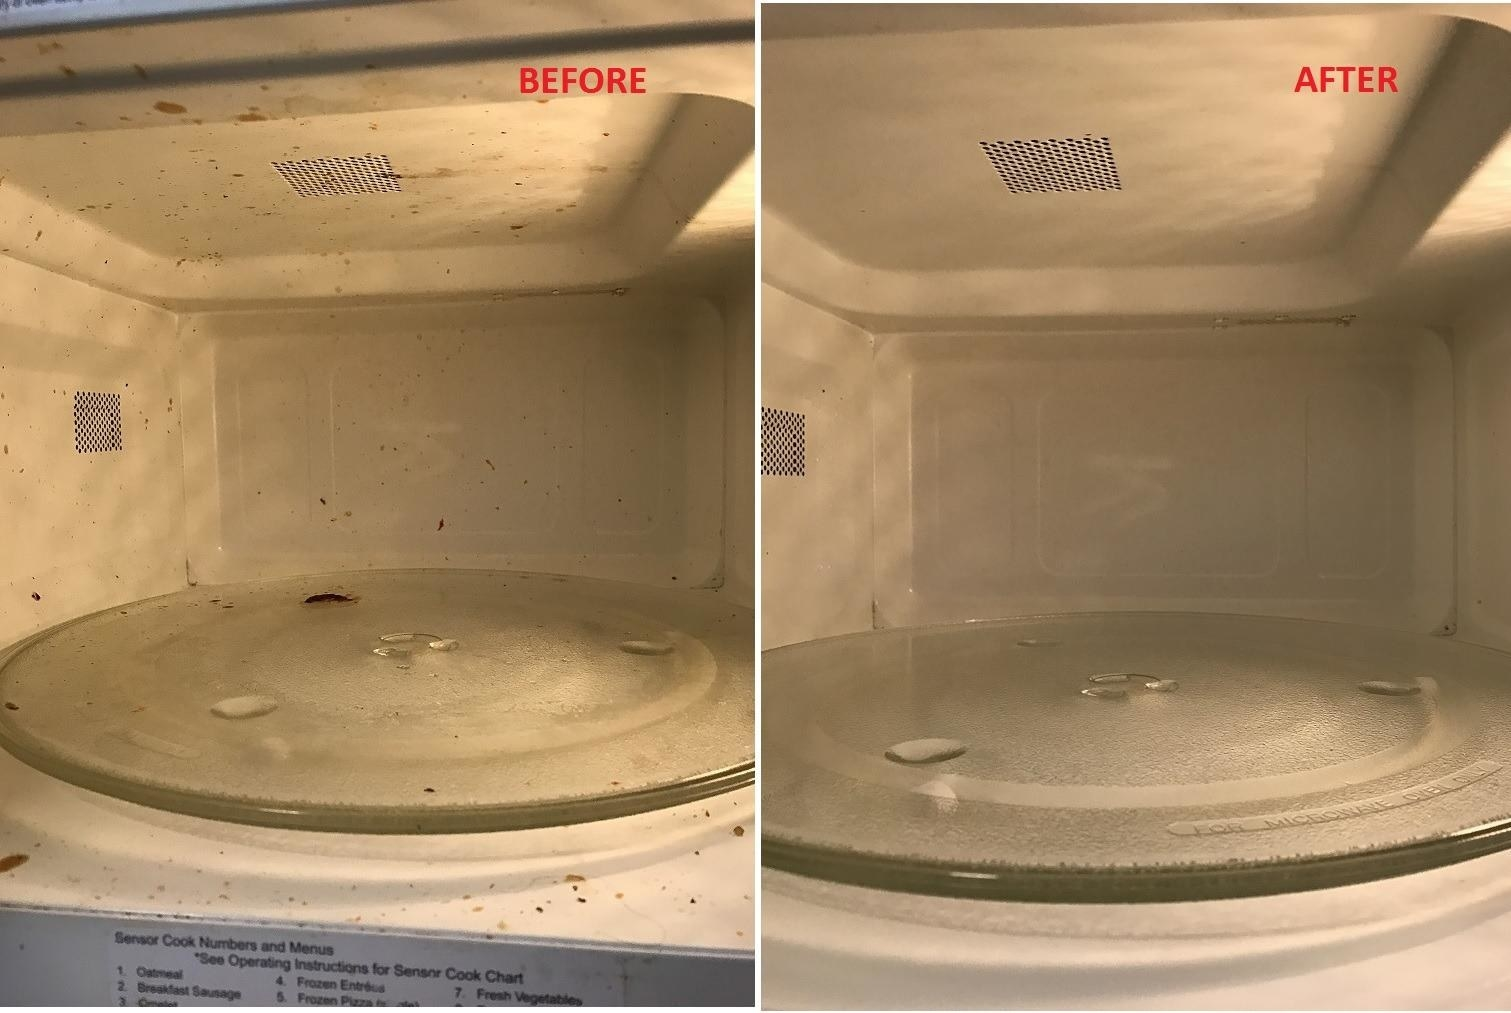 side by side of a dirty microwave with food splatter inside it next to an image of the same microwave looking totally clean after the steamer was used